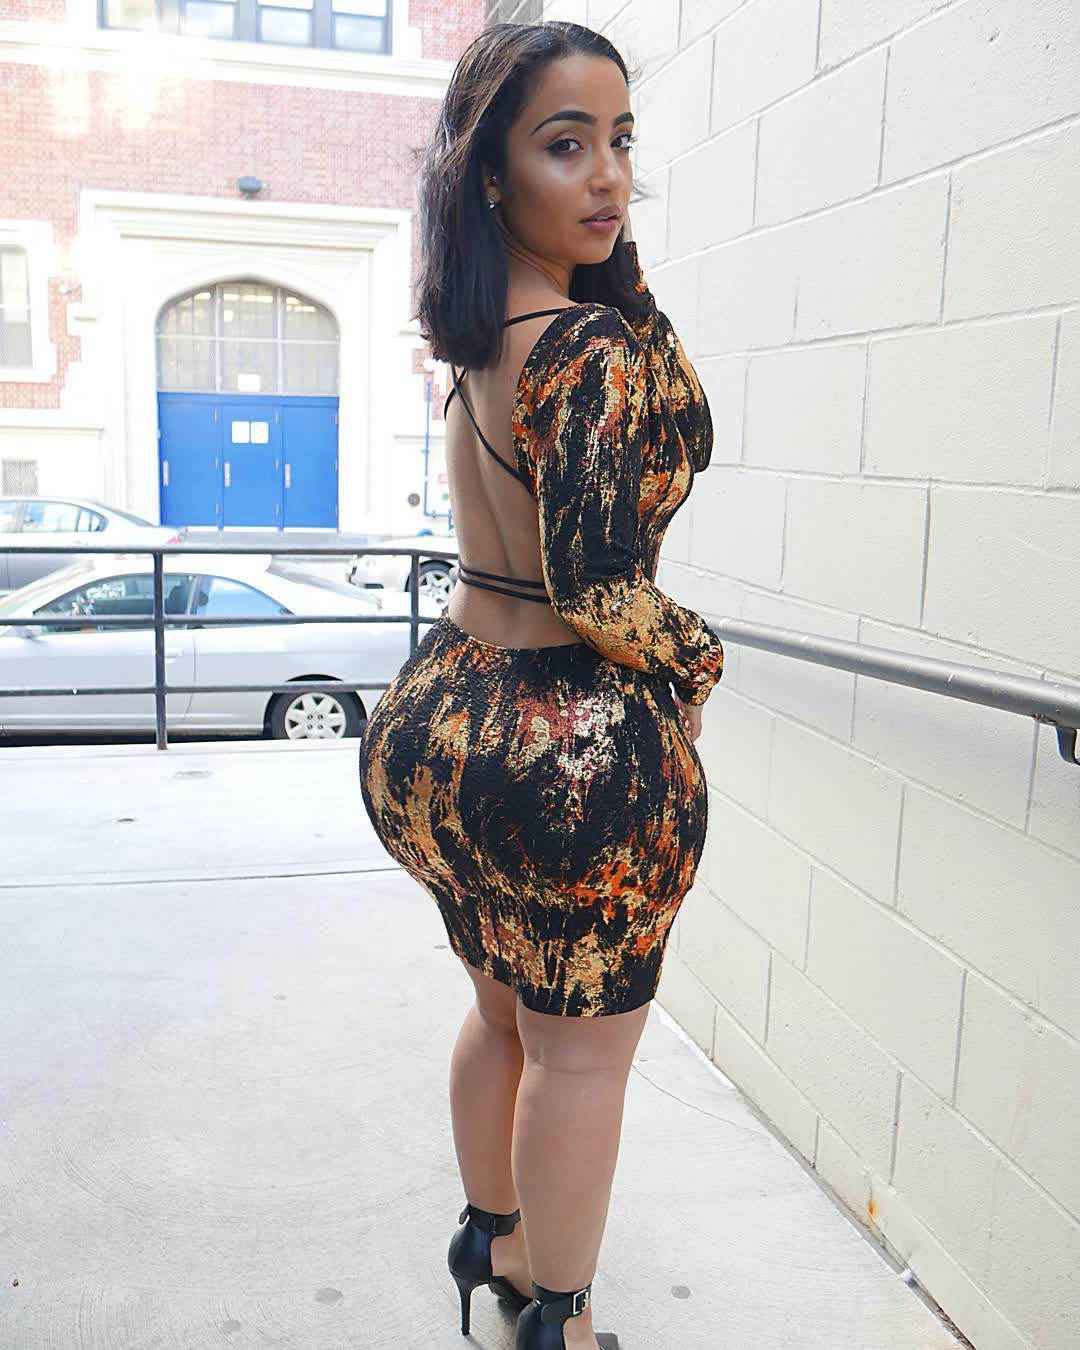 This Curvaceous Model Is Showing Off Her Plus